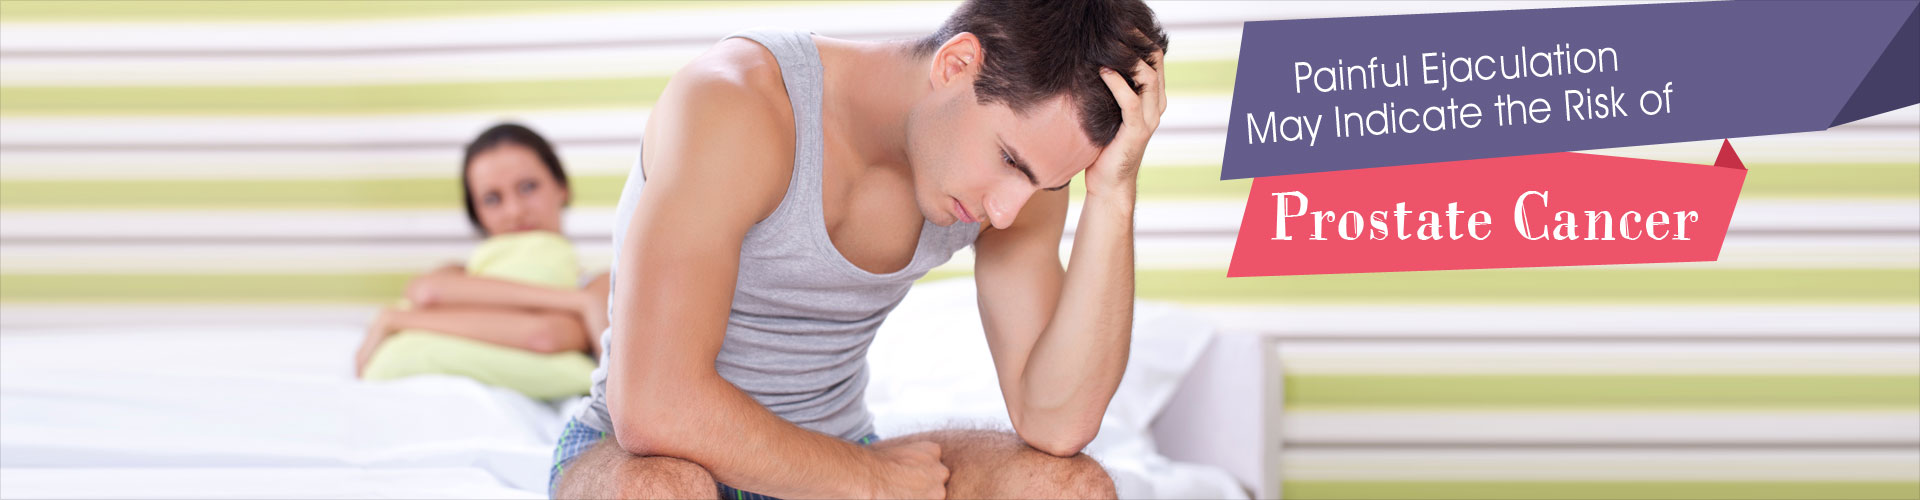 Painful Ejaculation May Indicate the Risk of Prostate Cancer